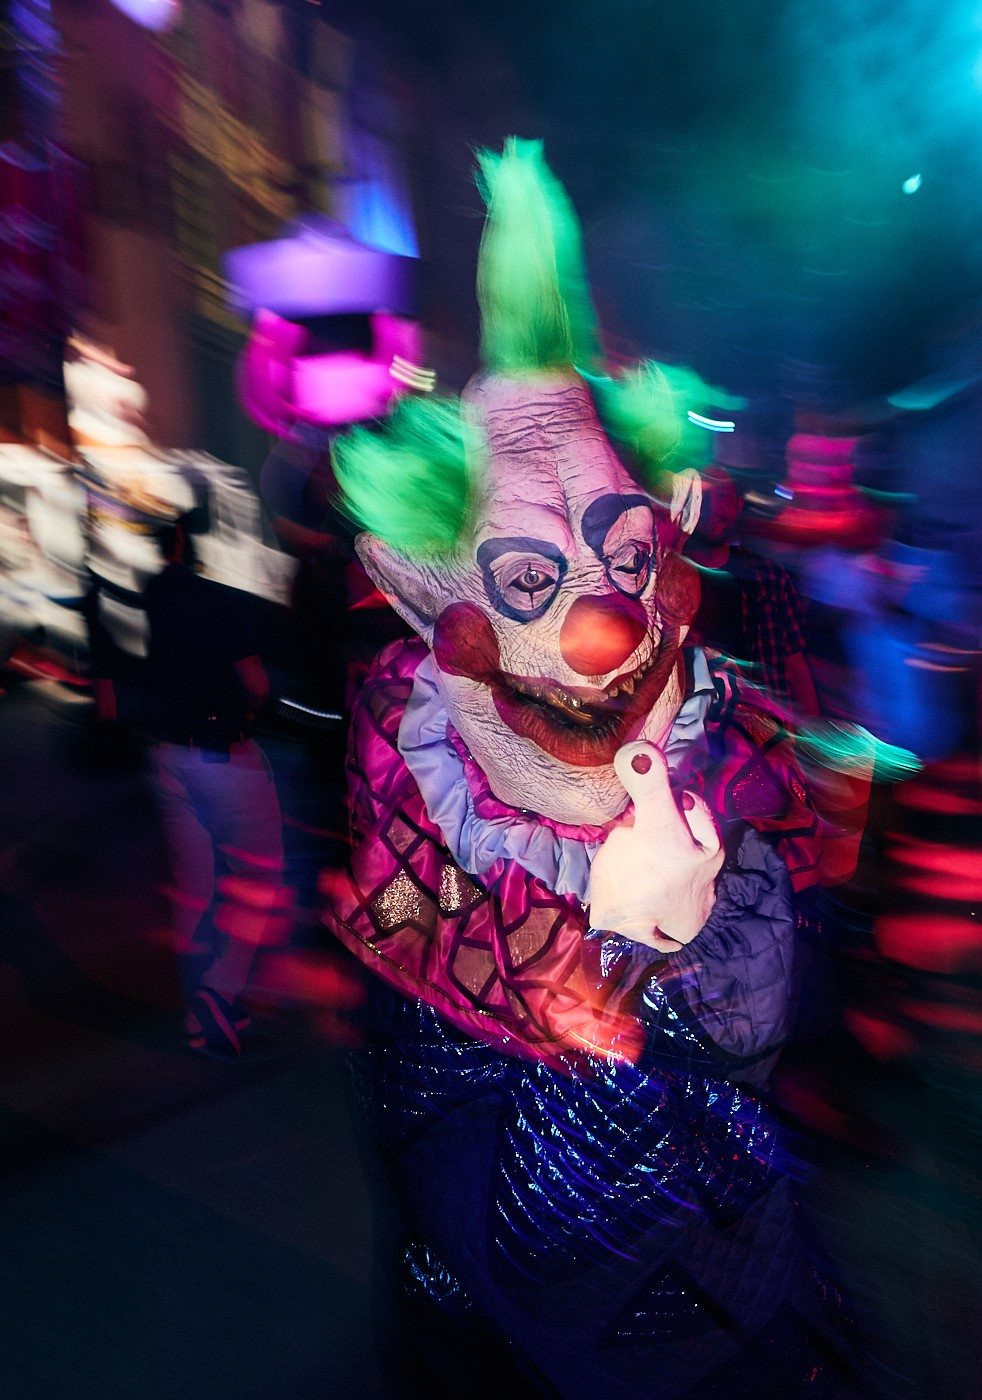 Halloween Horror Nights 28 is their biggest scare-fest ever